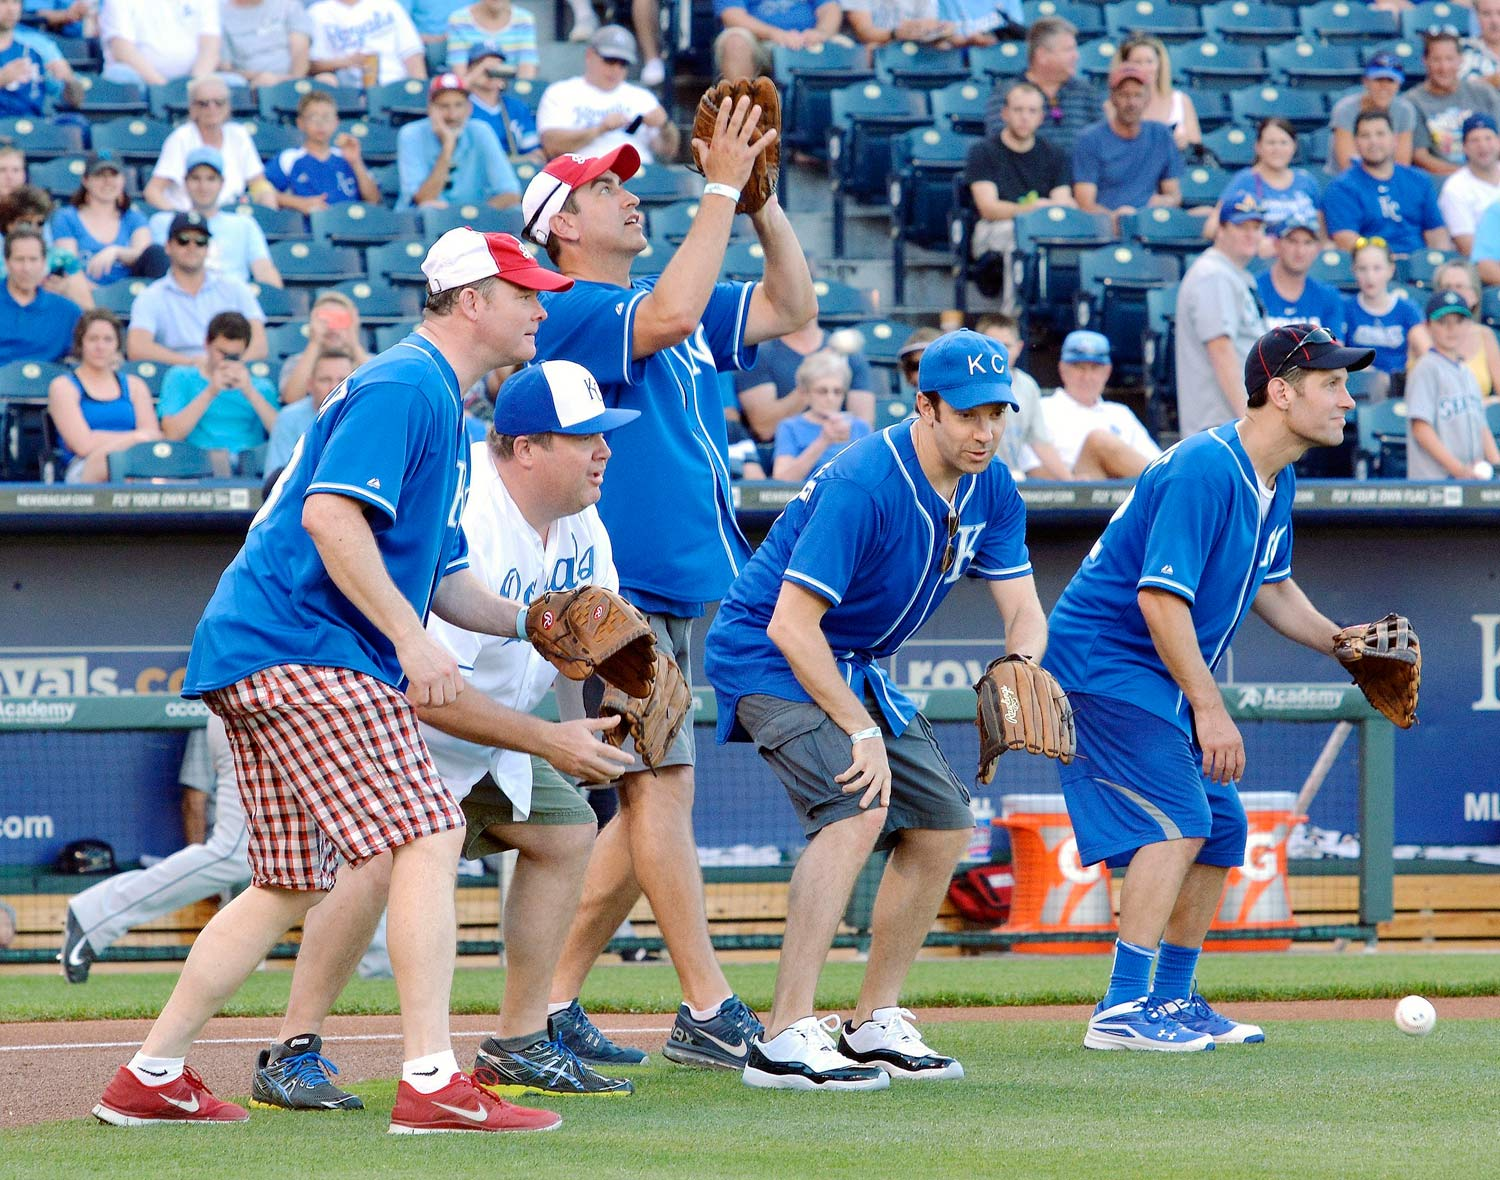 Following the Big Slick Celebrity Classic wiffle ball game, these comedic actors with roots in or around Kansas City caught the ceremonial first pitches of pediatric cancer patients before the Royals game on June 20 at Kauffman Stadium in Kansas City.